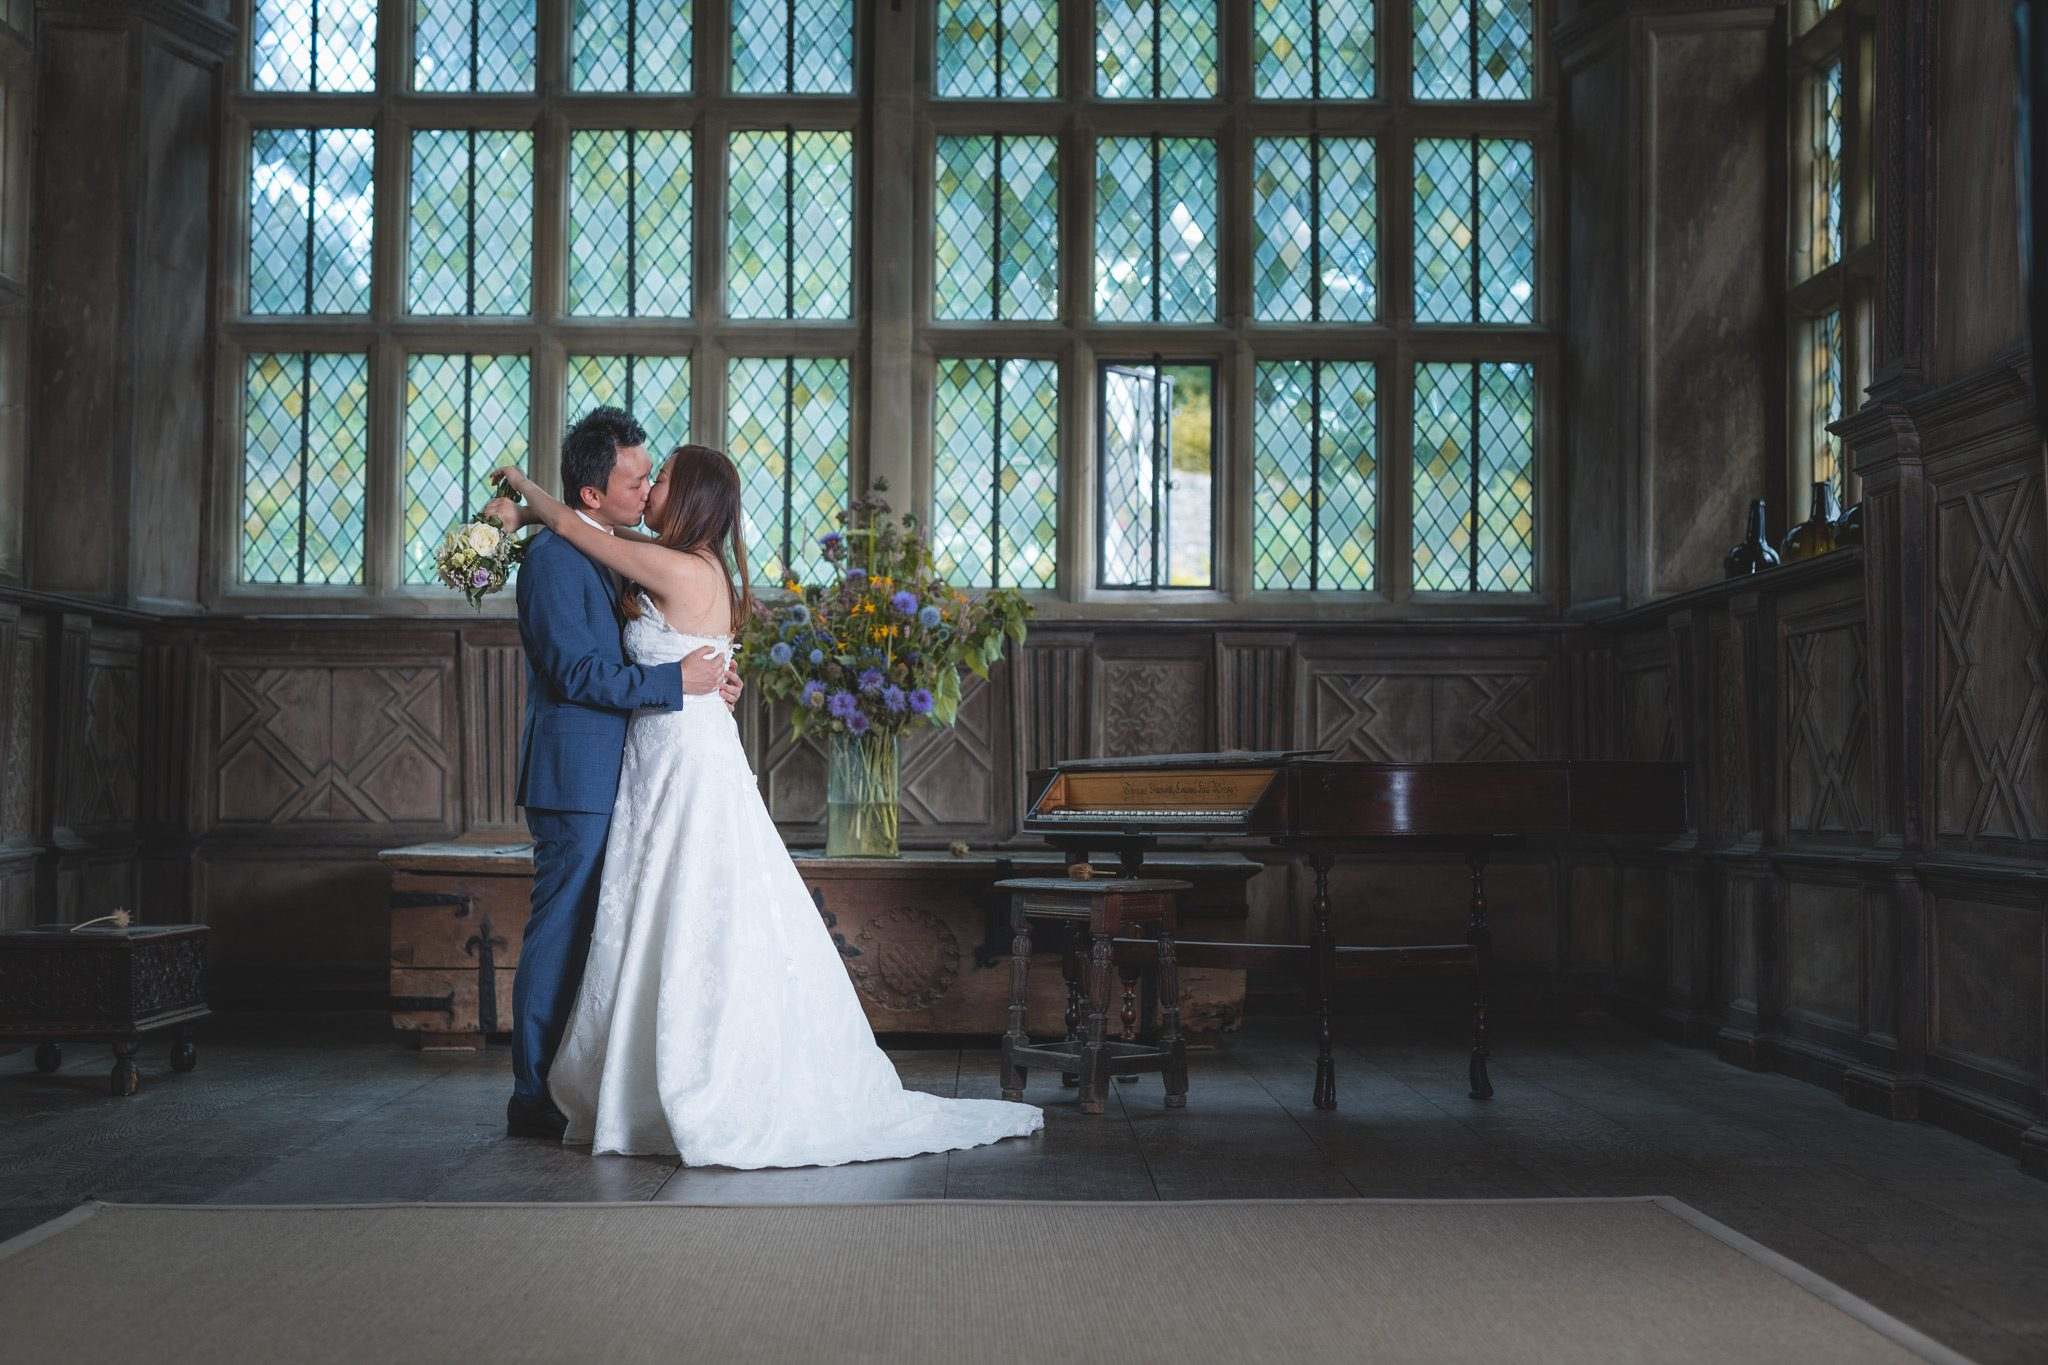 Summer Wedding at Haddon Hall - Xianxi and Lufei Inside the House